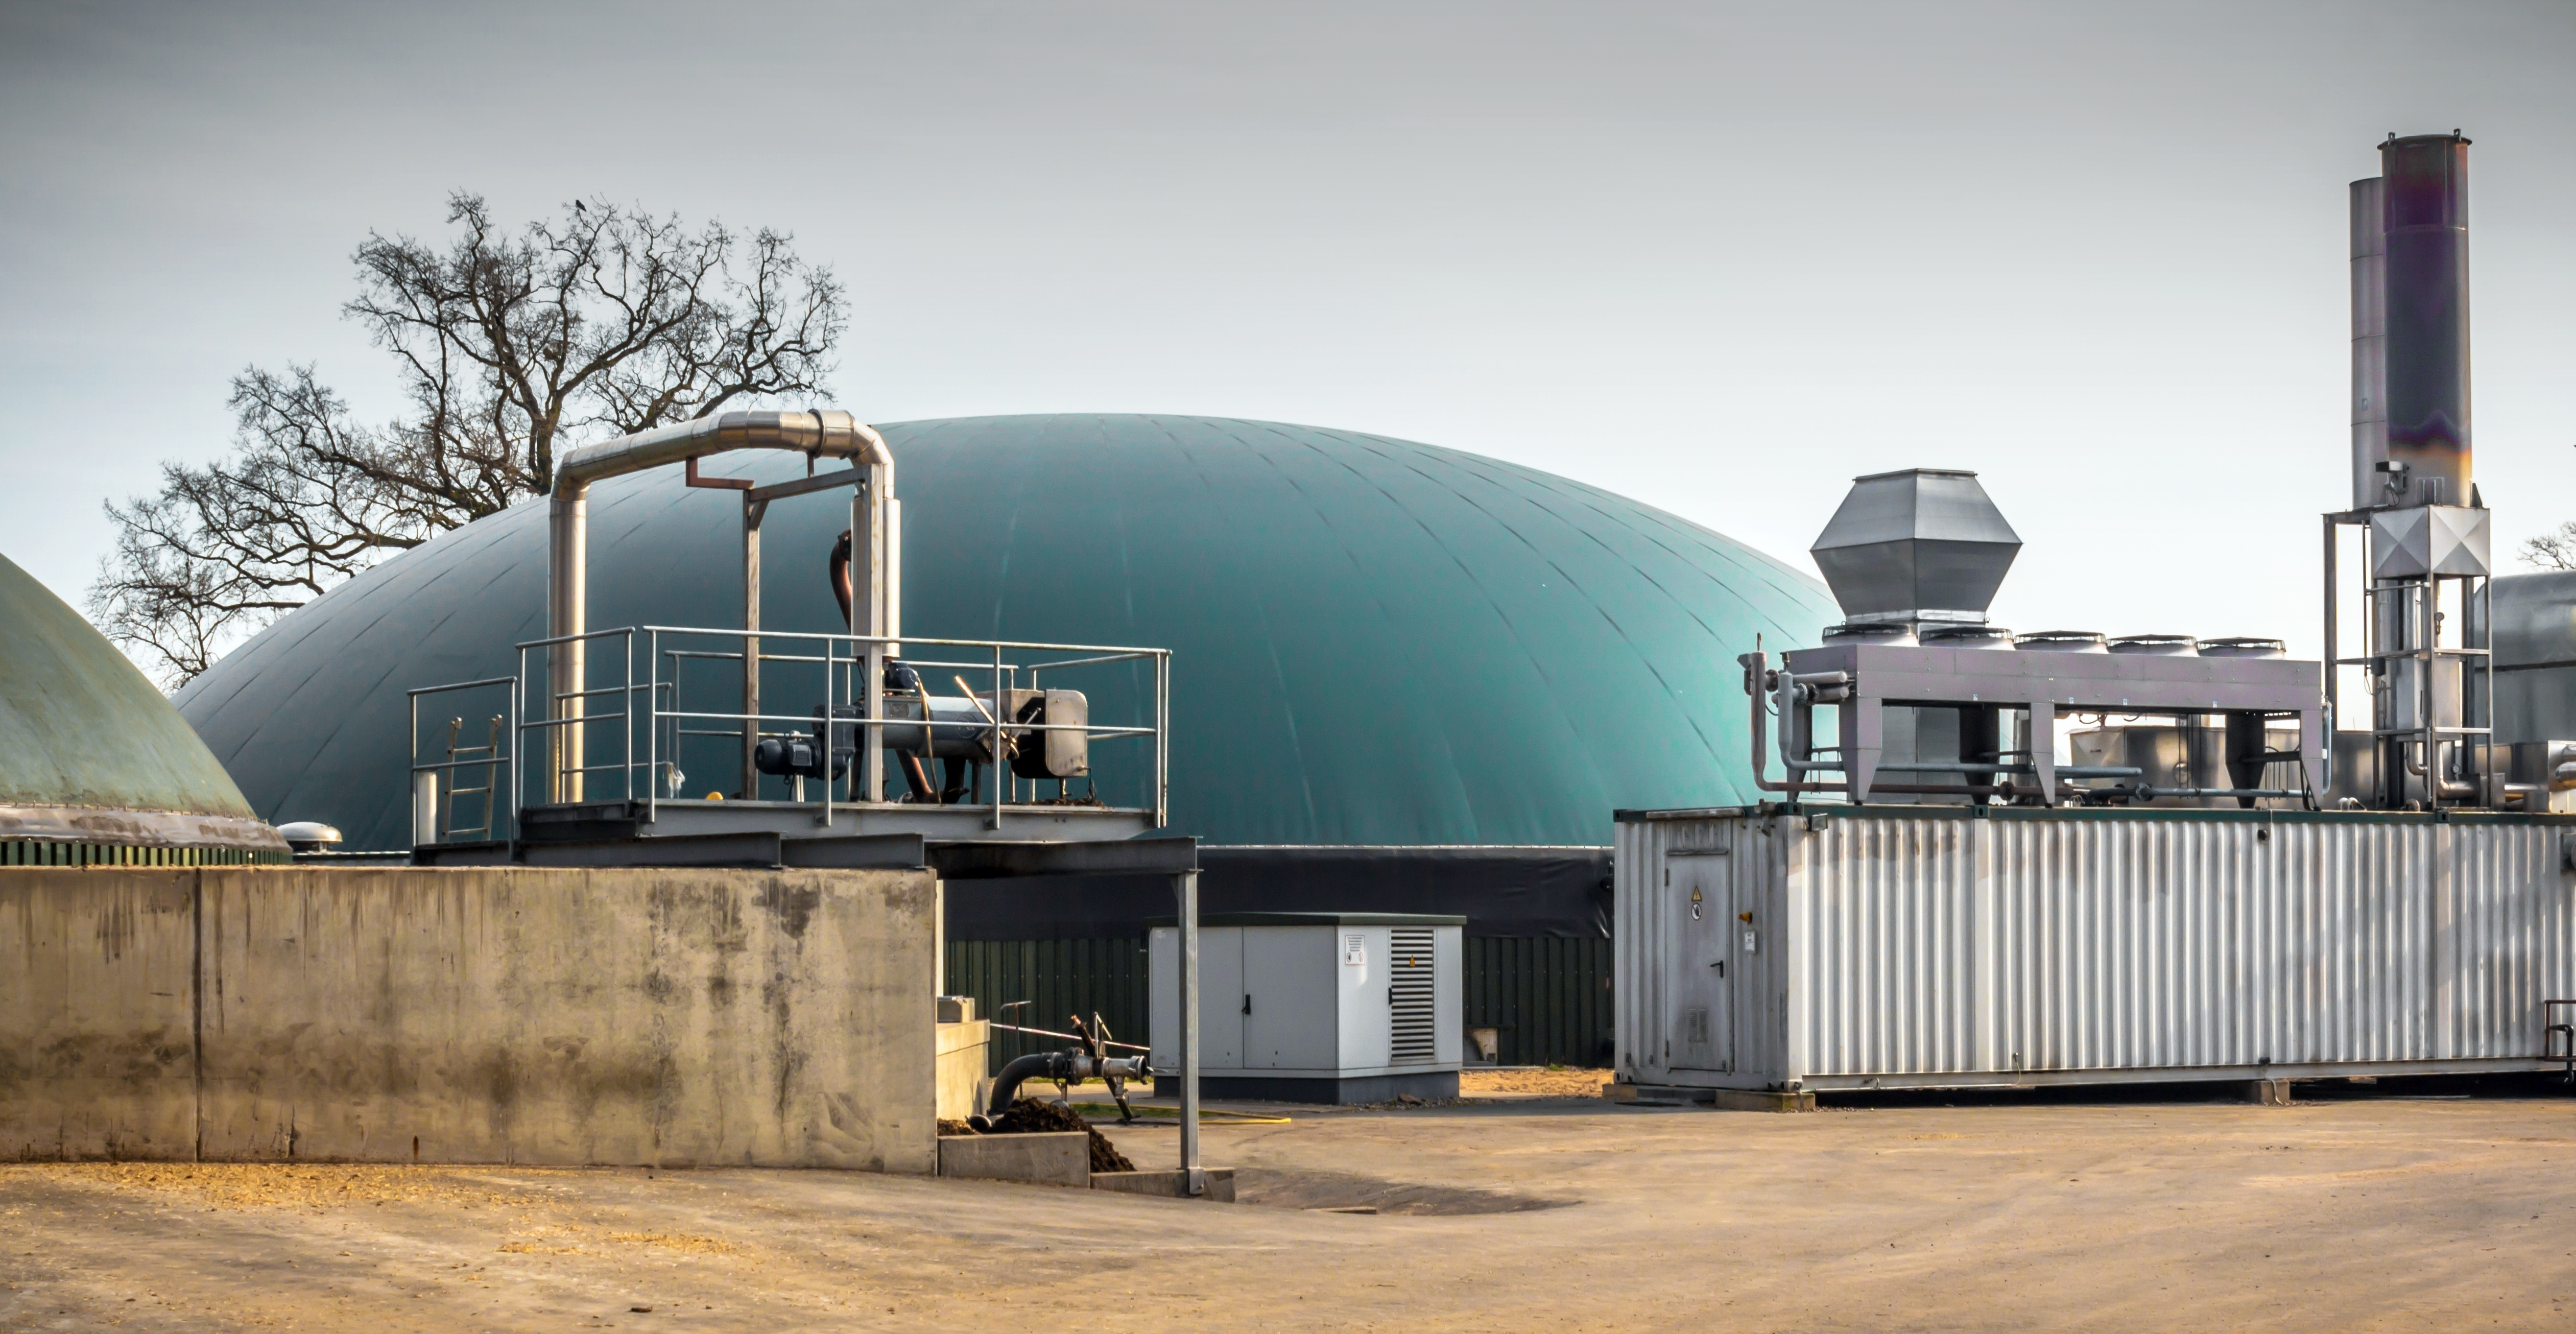 Anaerobic-Digestion-Colloide._5044x2612_acf_cropped